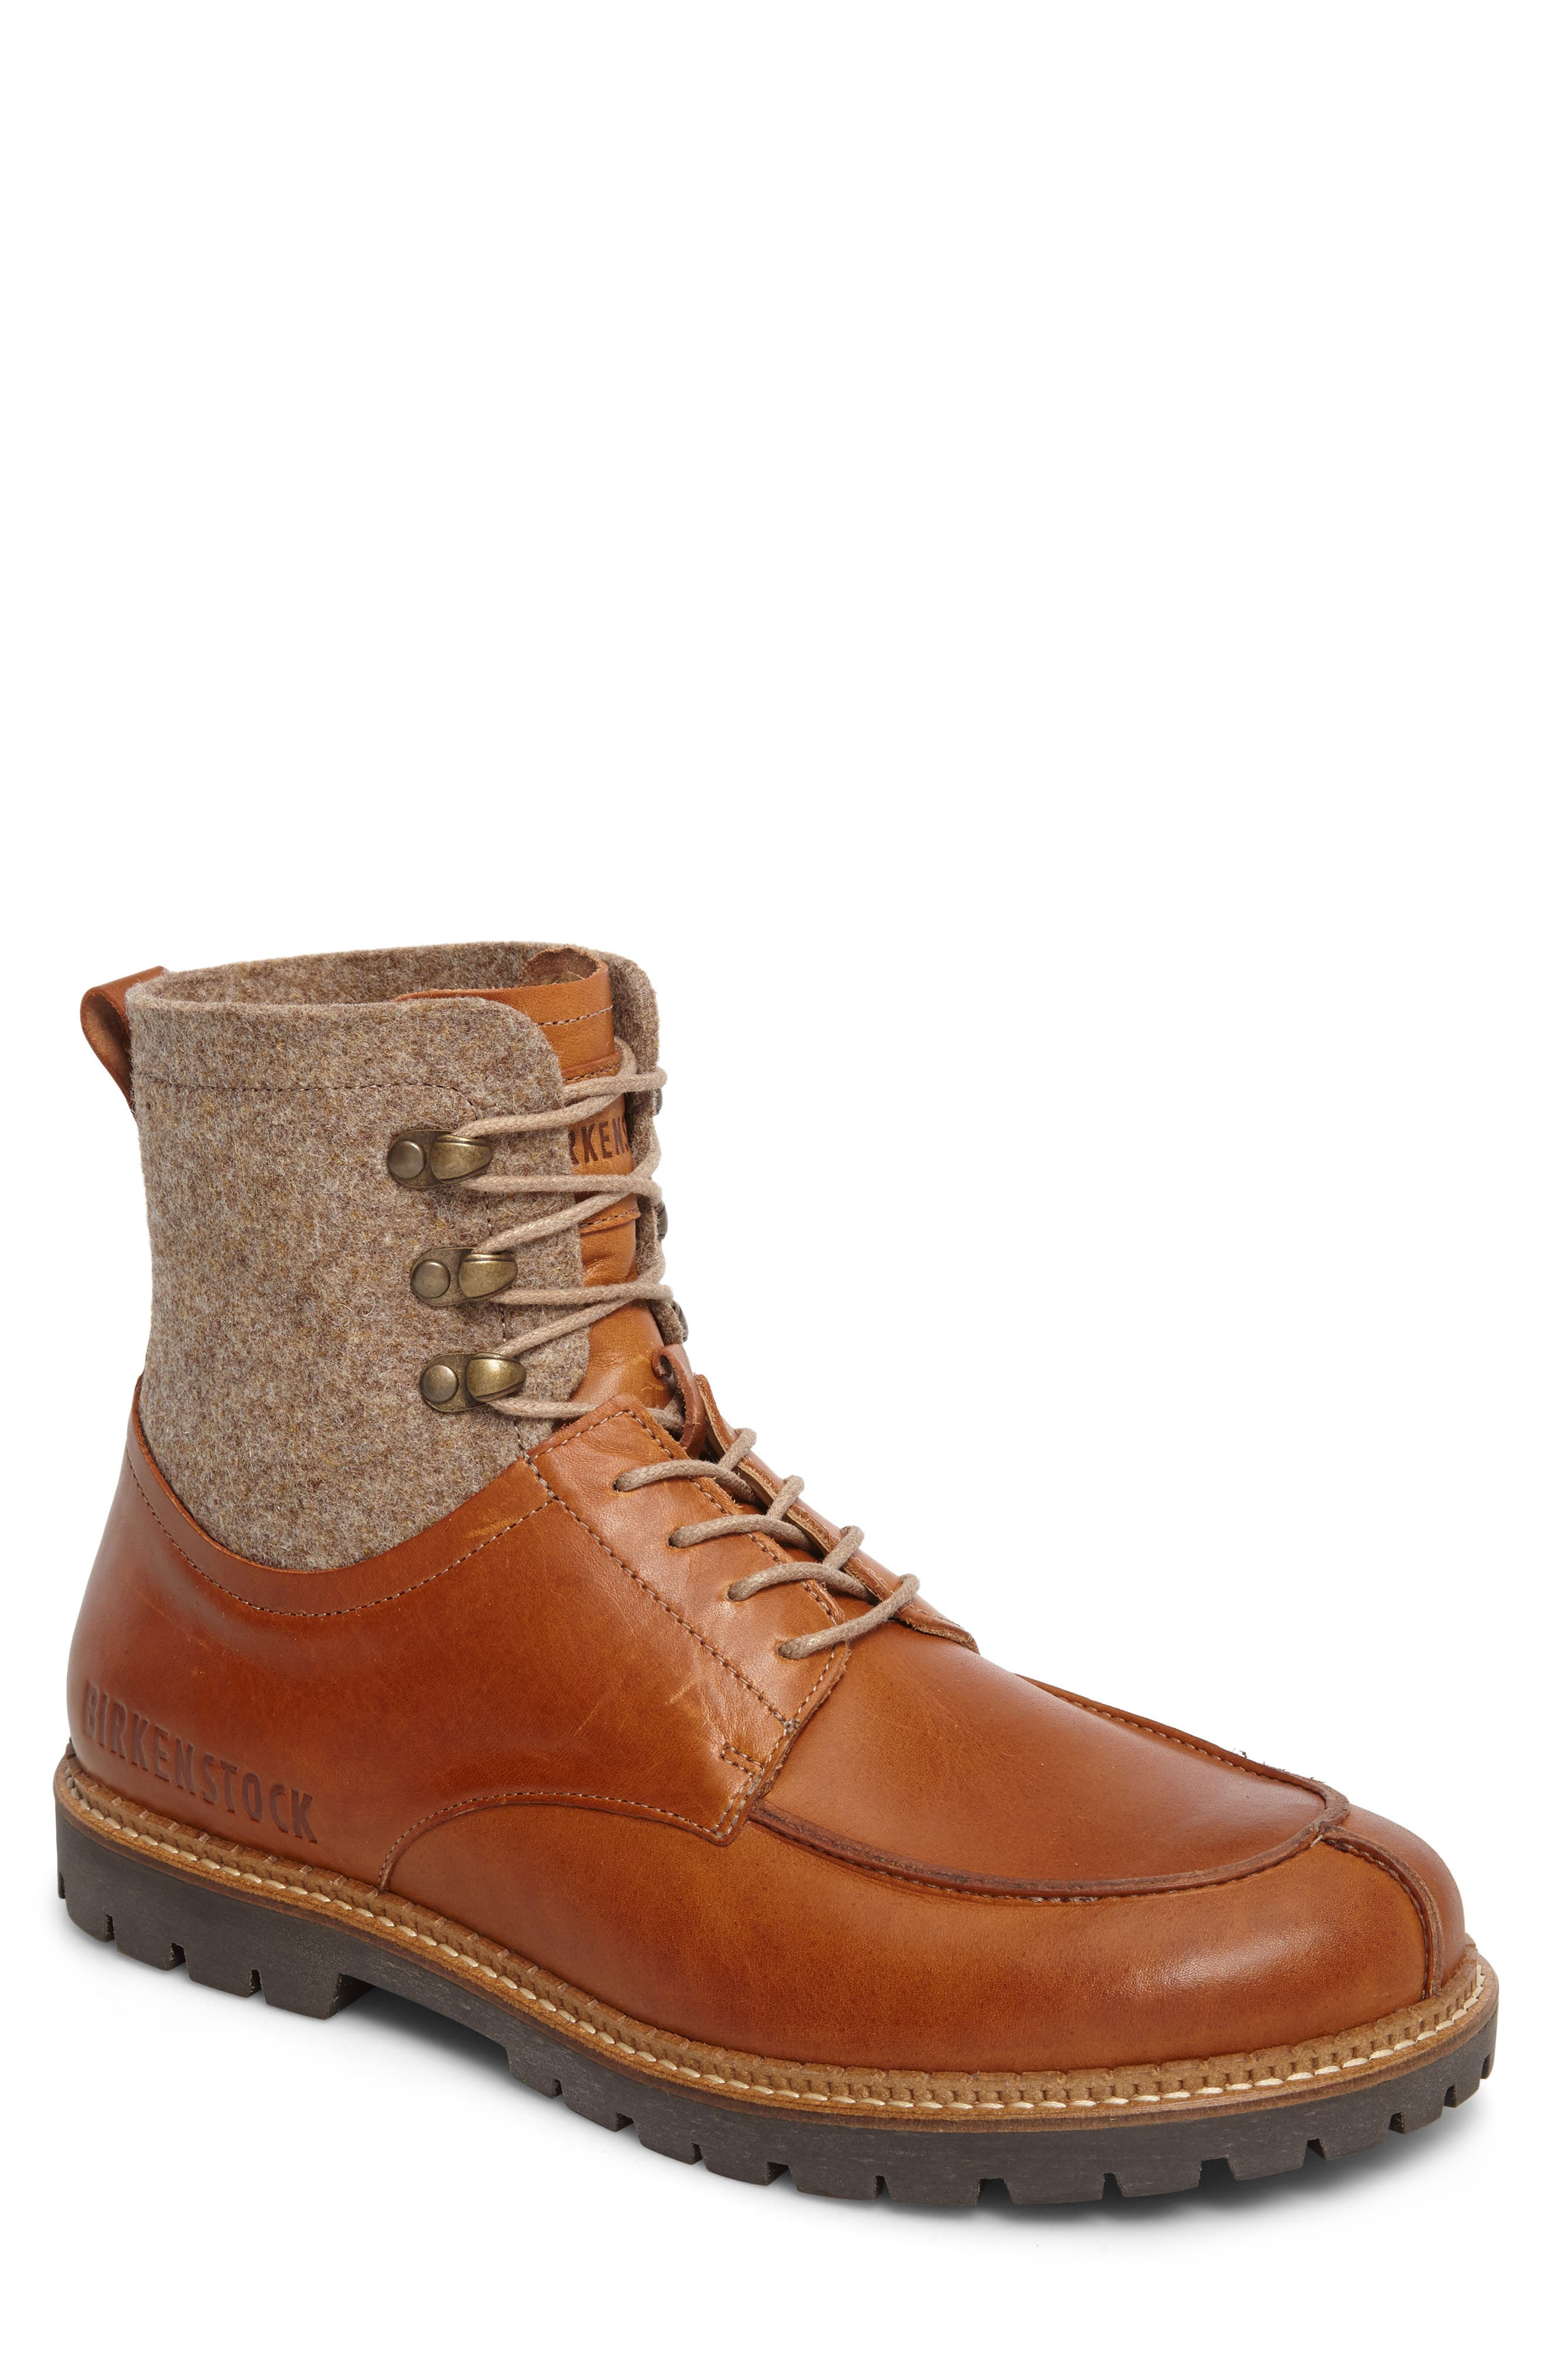 Timmins Split Toe Boot,                             Main thumbnail 1, color,                             Cuoio